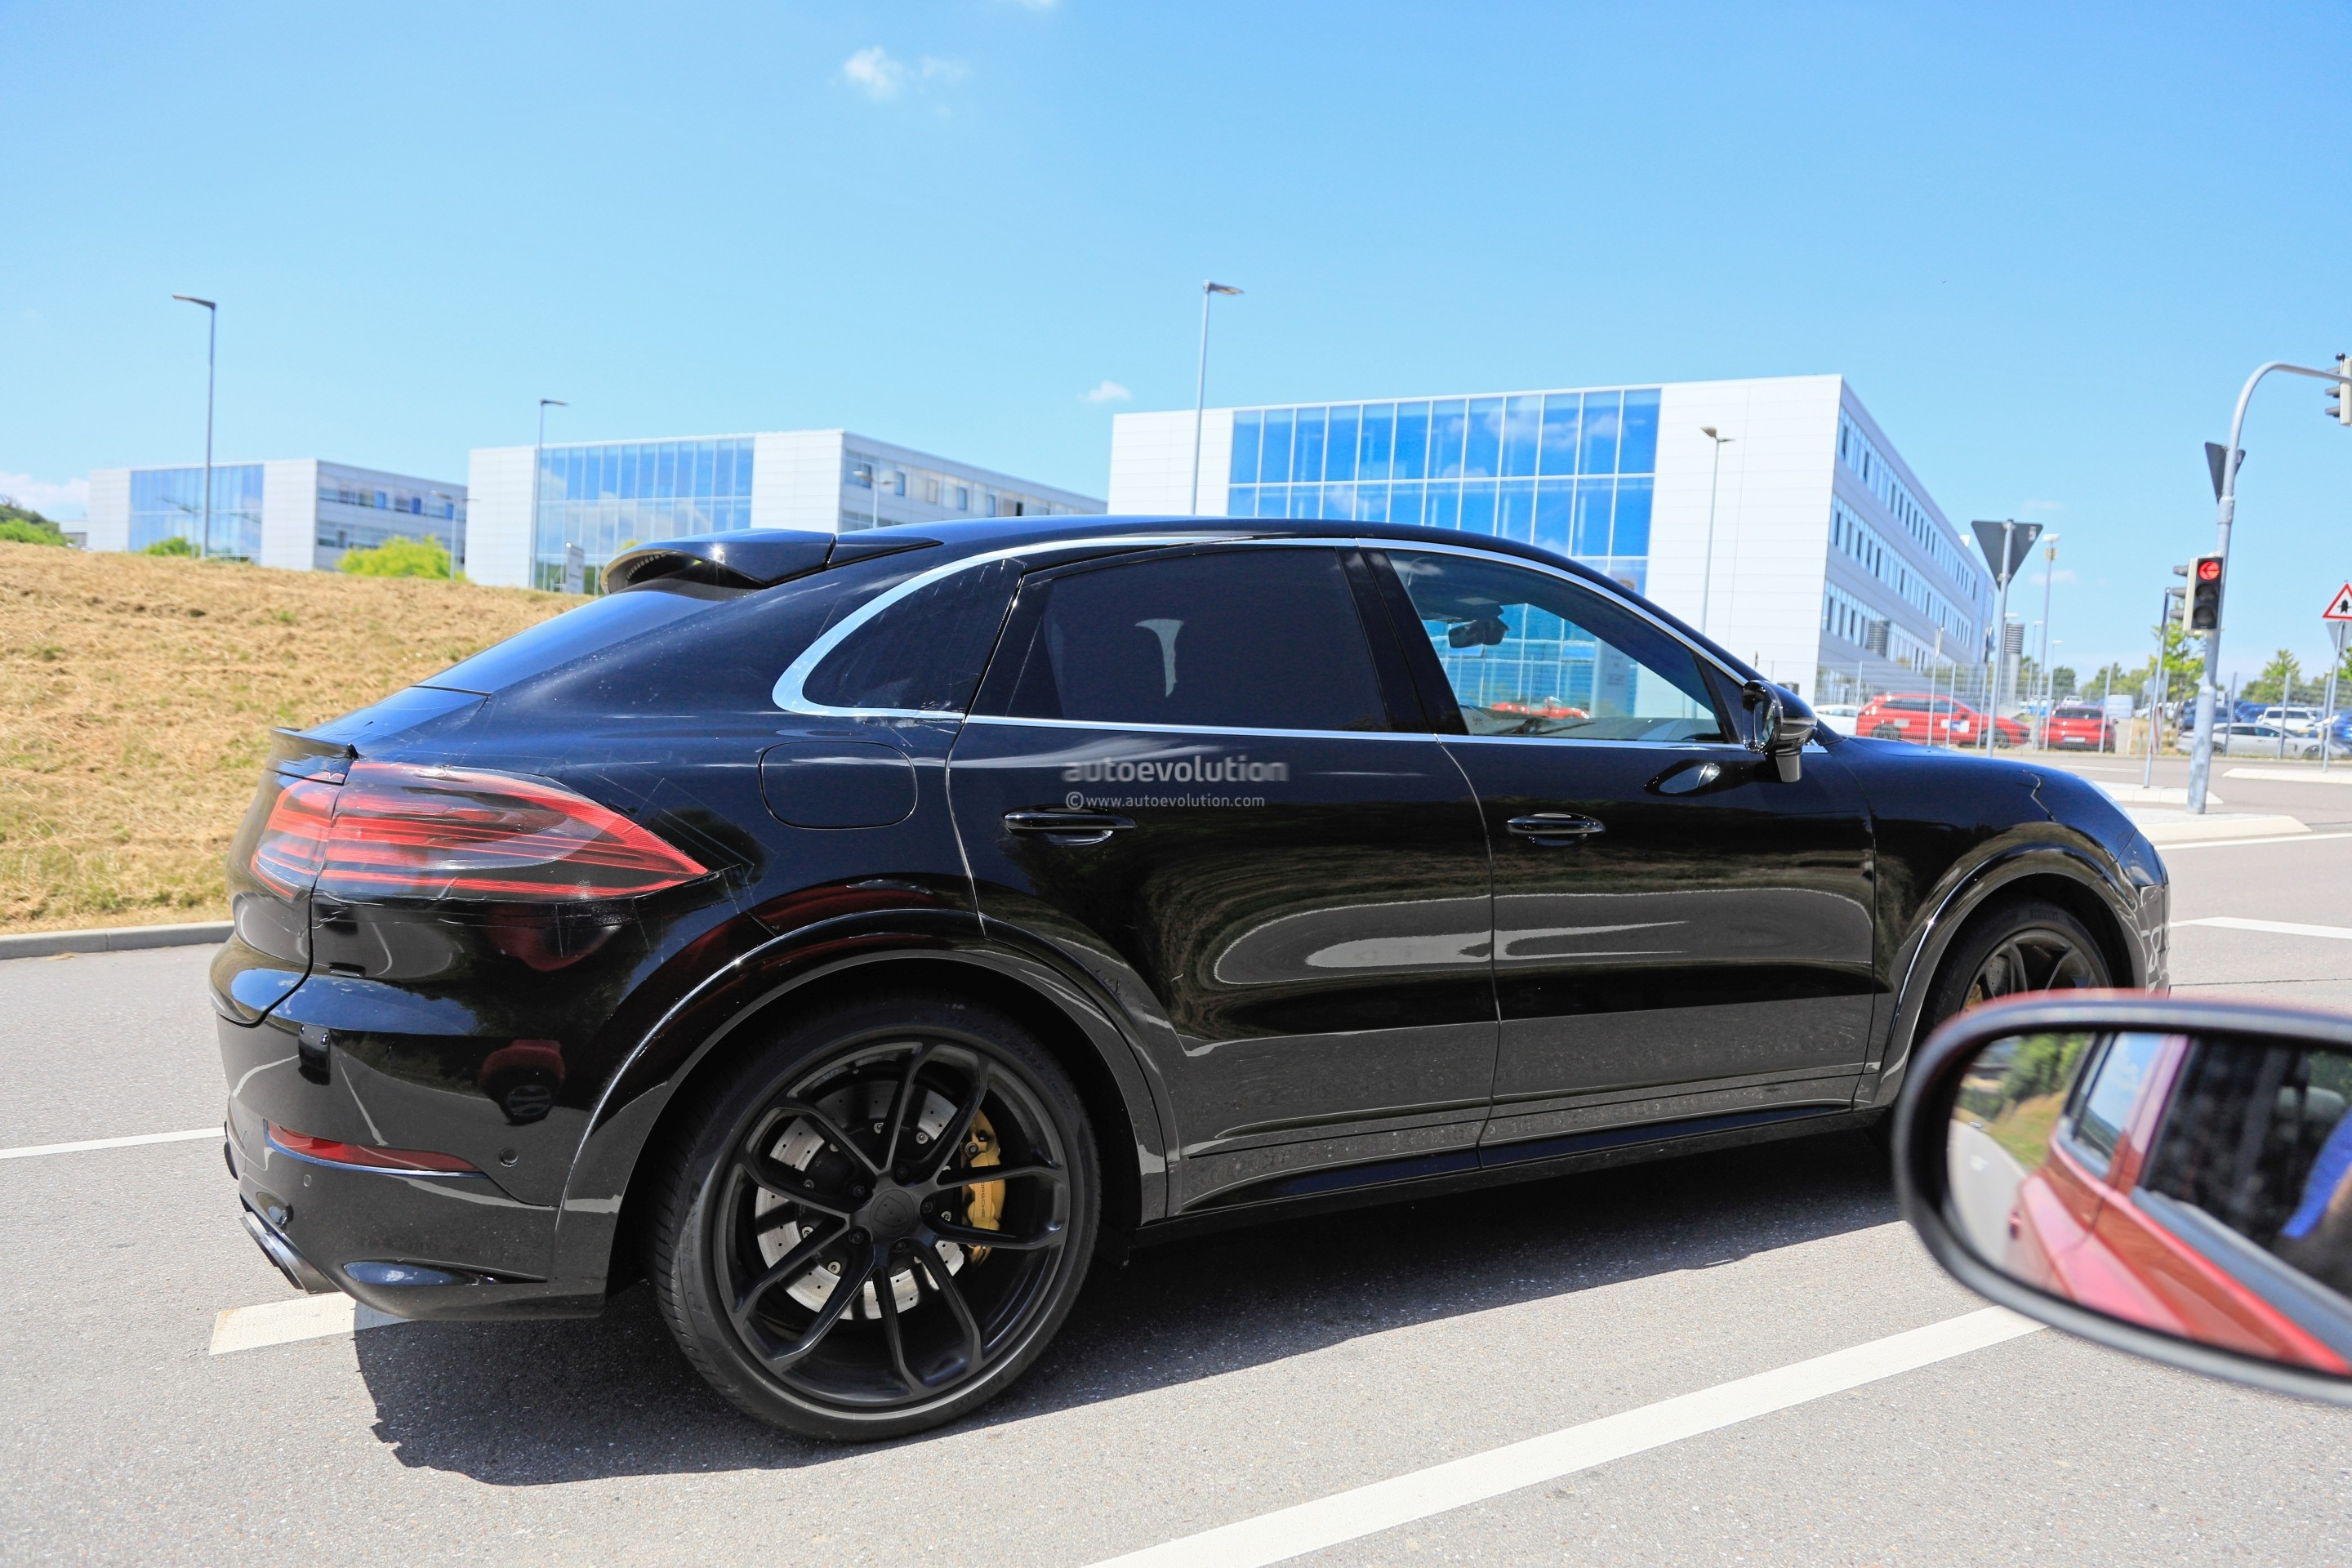 24 A 2020 Porsche Cayenne Turbo S Price Design and Review